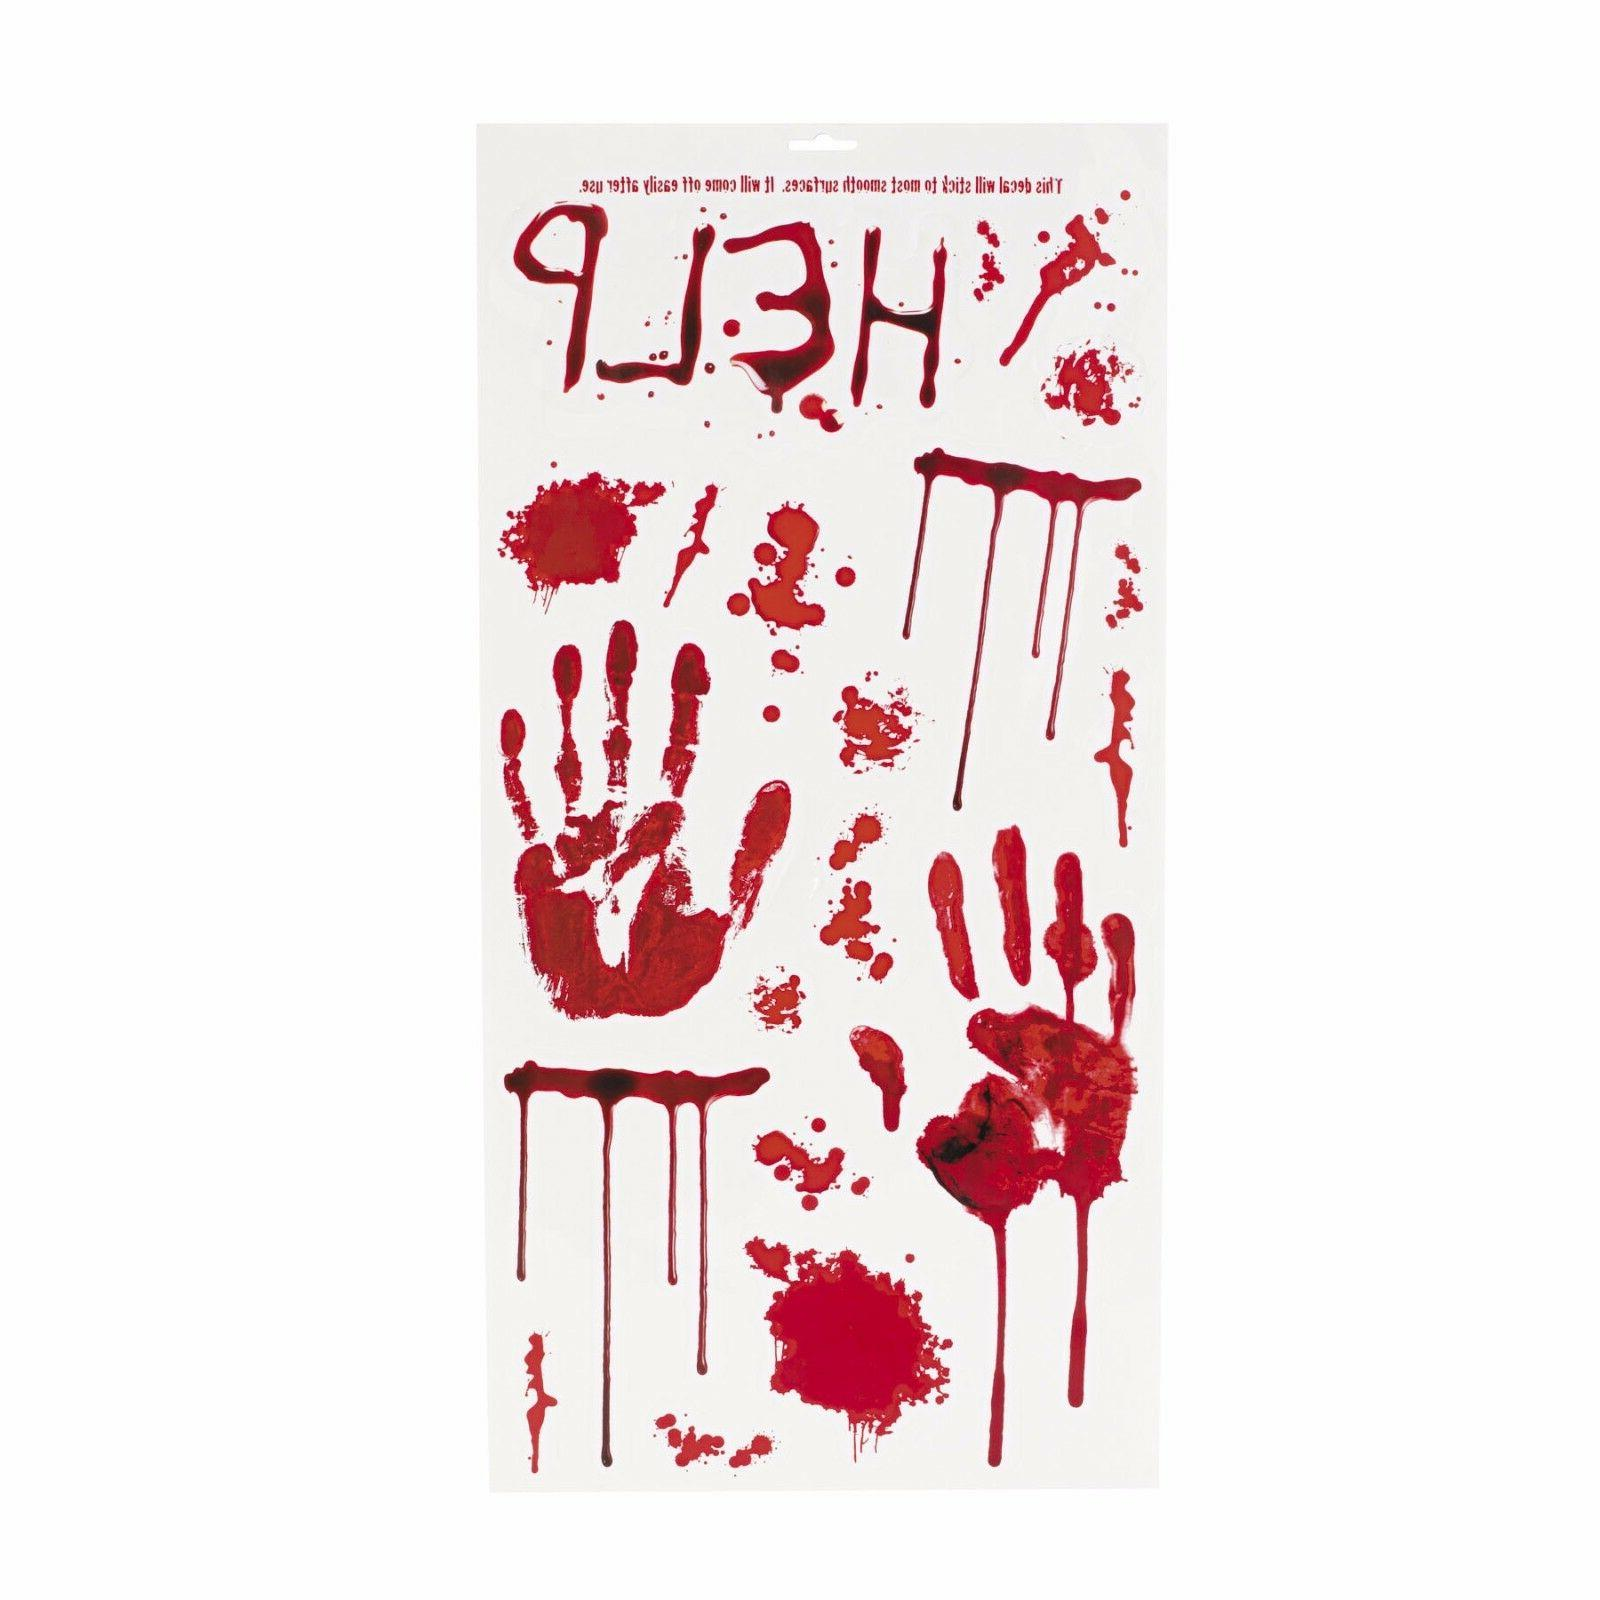 20 bloody wall decals hanging decorations zombie